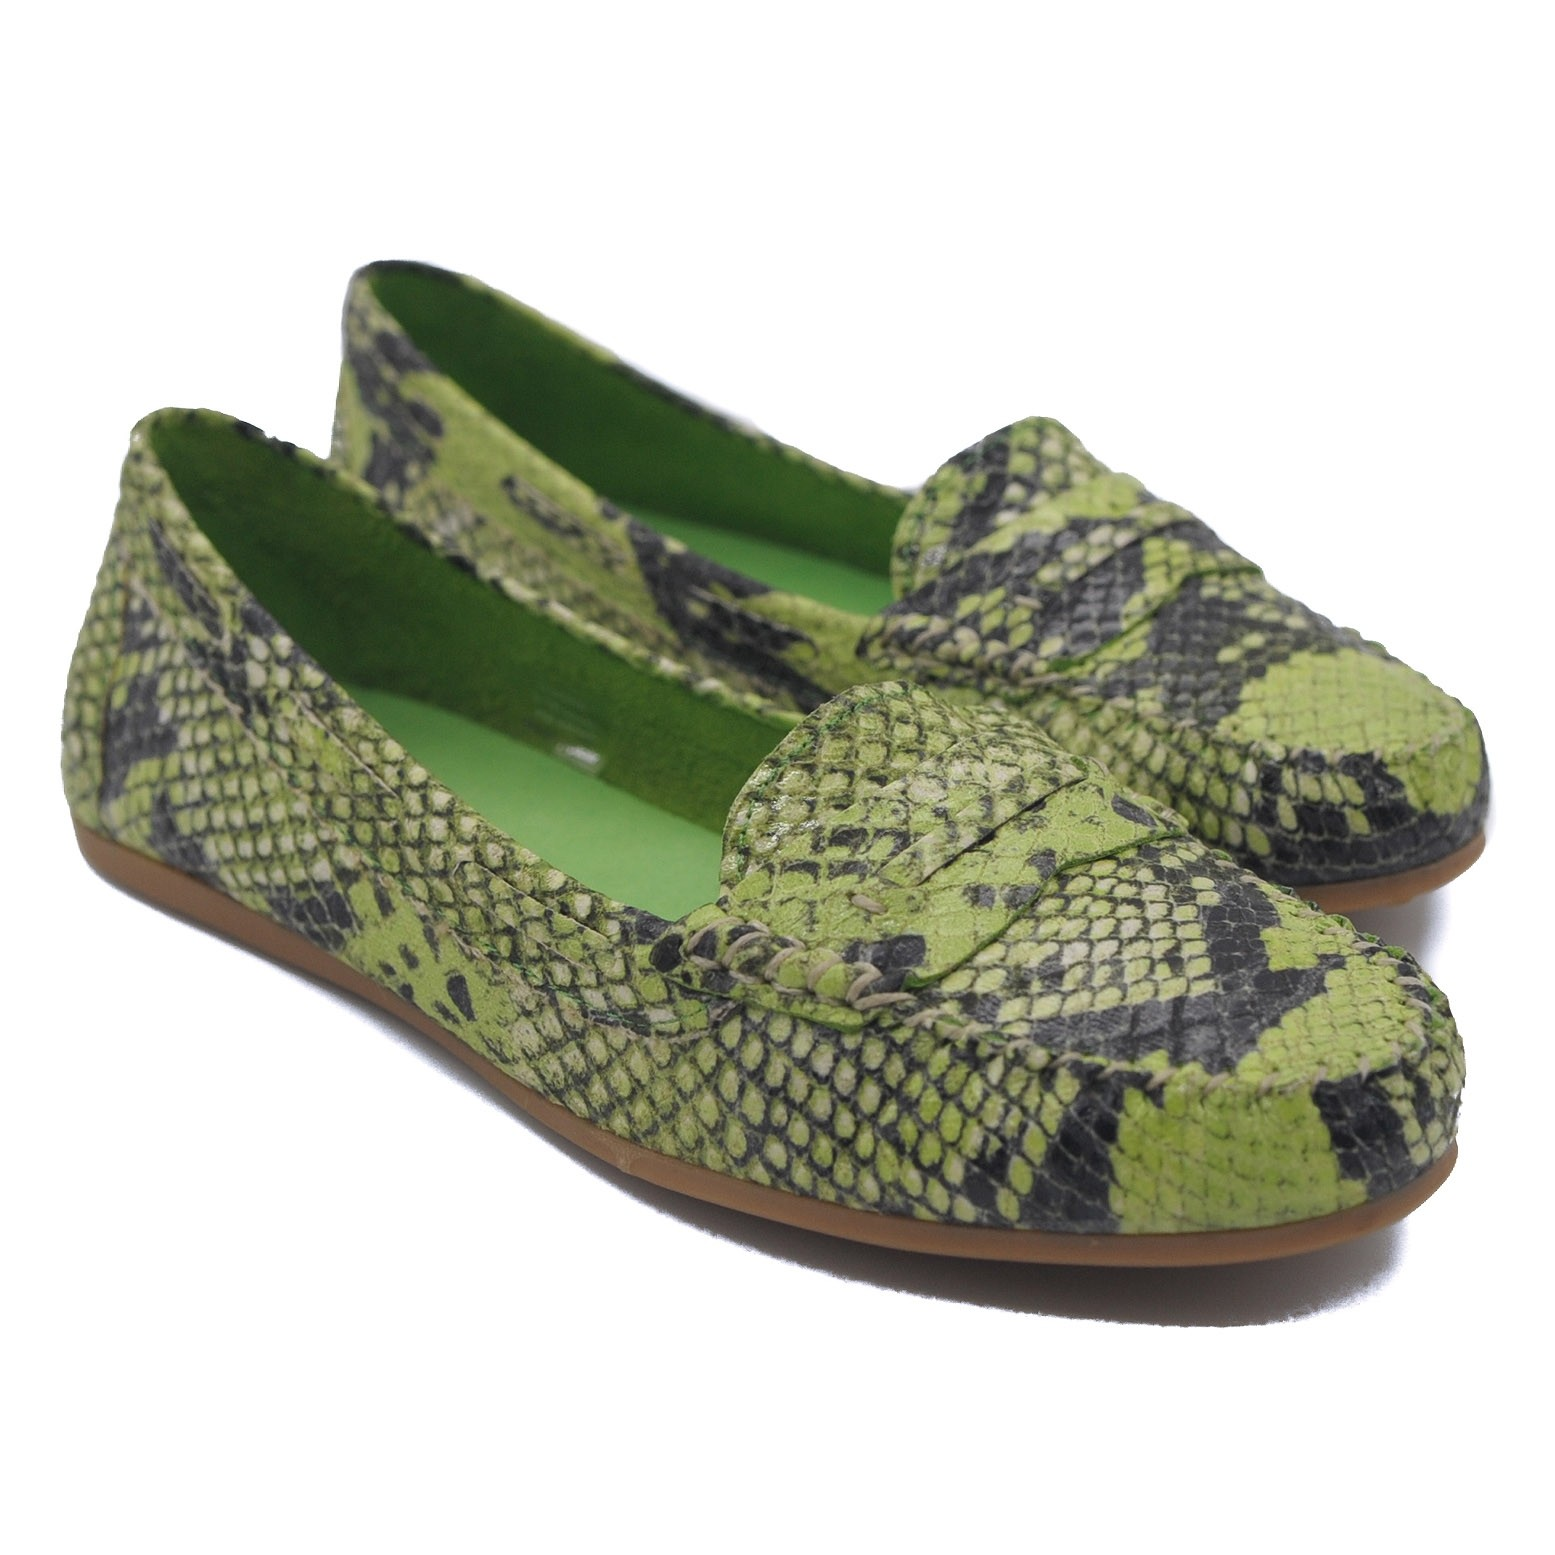 Goody2Shoes Ladies Apple Green Faux Snakeskin Penny Loafers